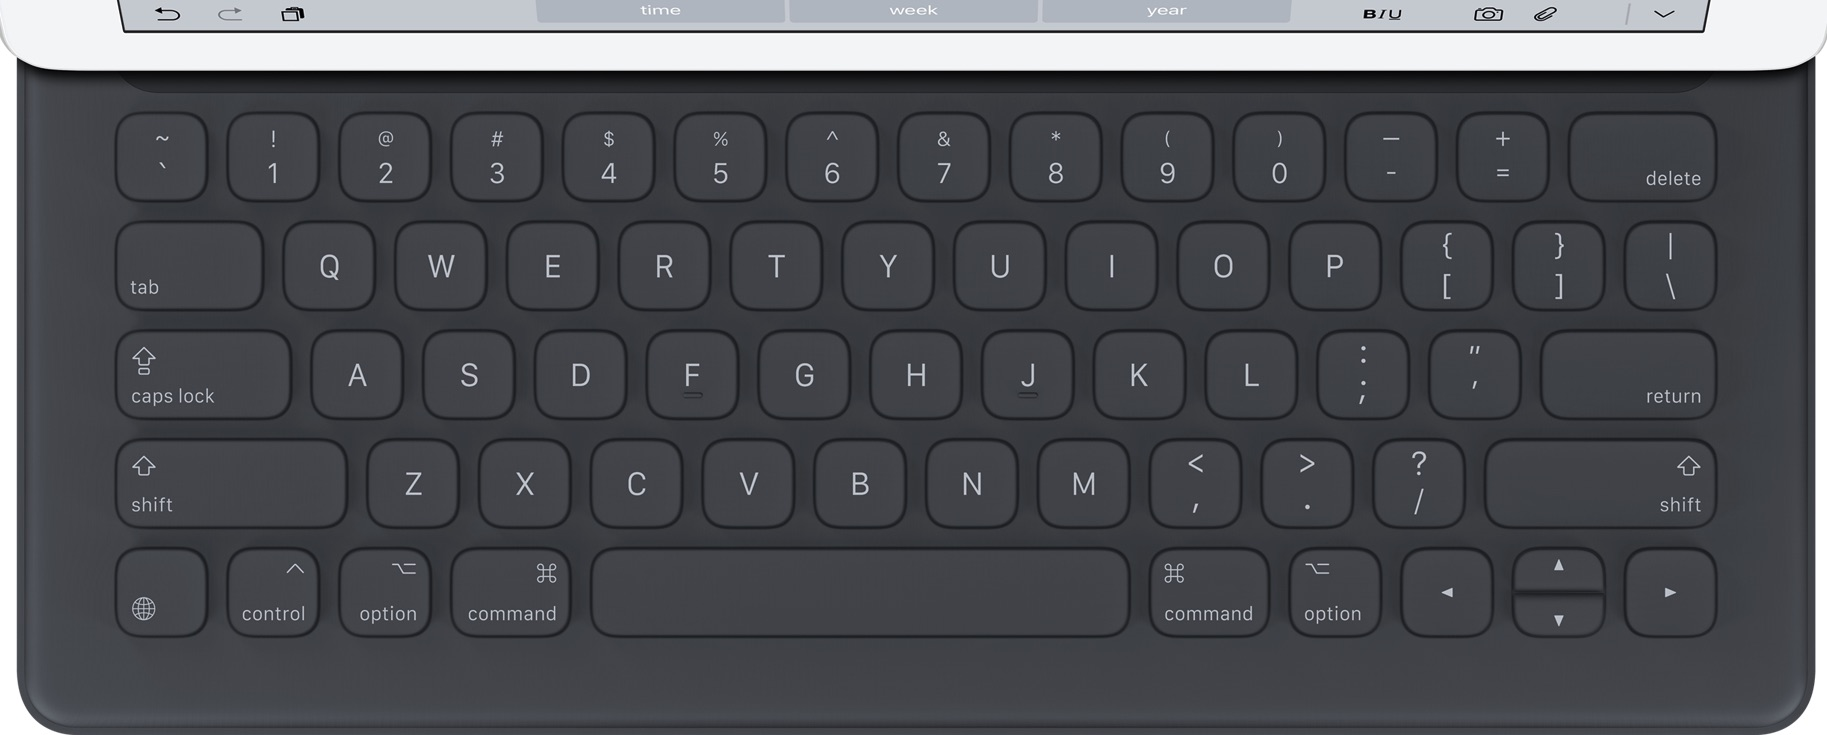 Immagine reale dimensione di  iPad Smart Keyboard .